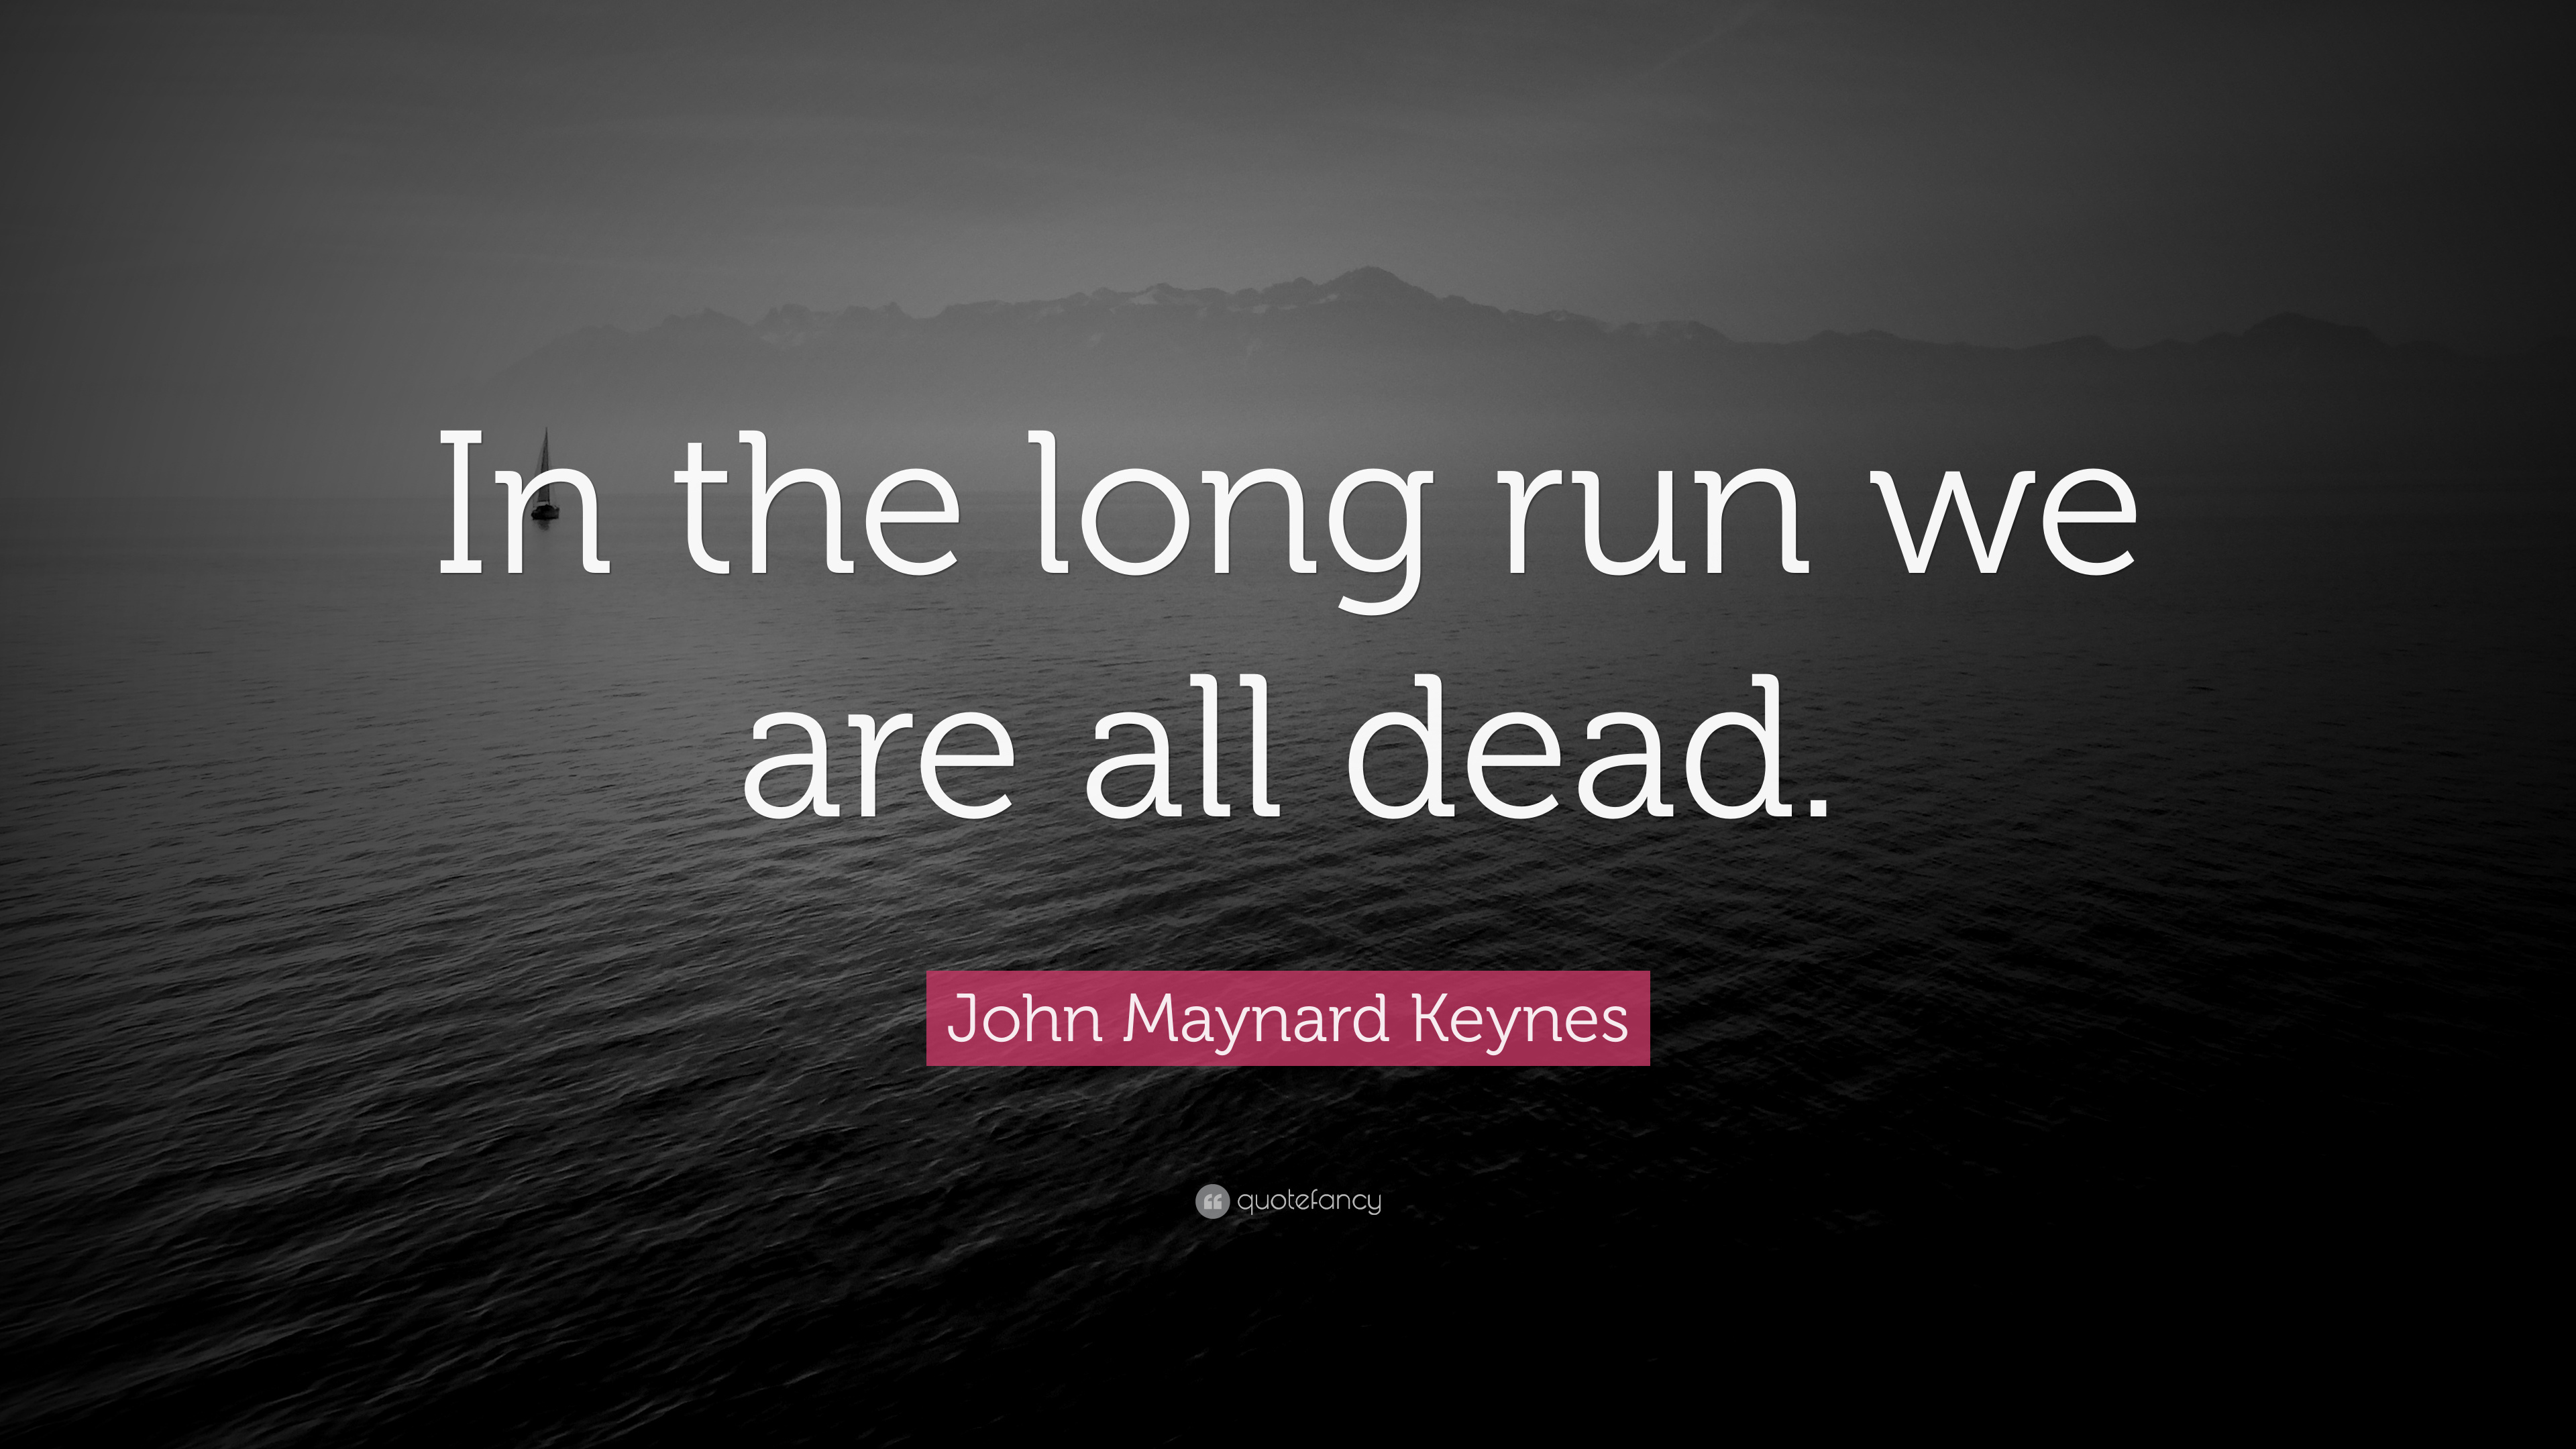 Dead Wallpaper With Quotes John Maynard Keynes Quote In The Long Run We Are All